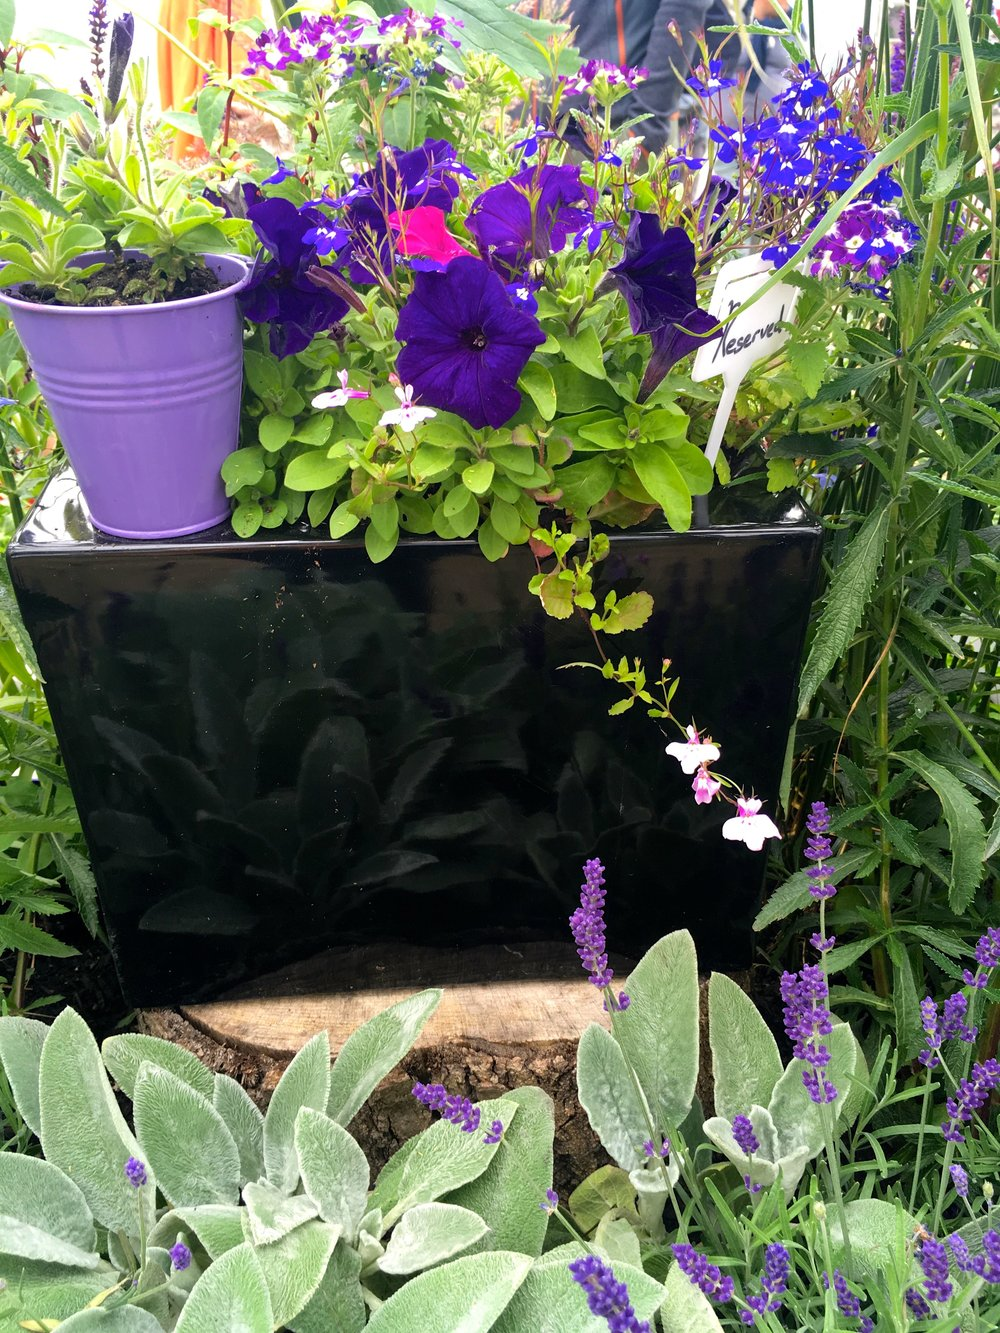 SAGE REFLECTING IN THE GLOSSY BLACK CONTAINER